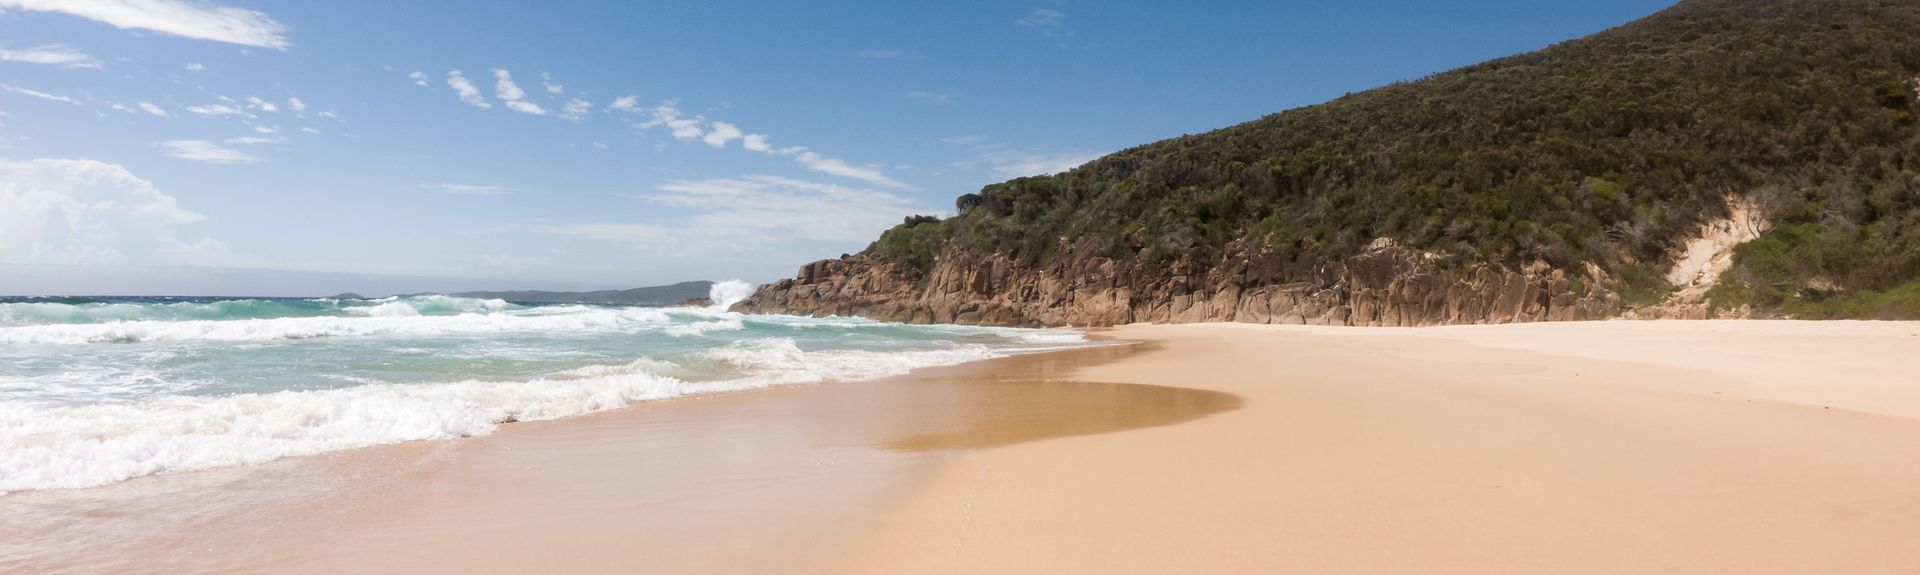 Anna Bay, New South Wales, Australia